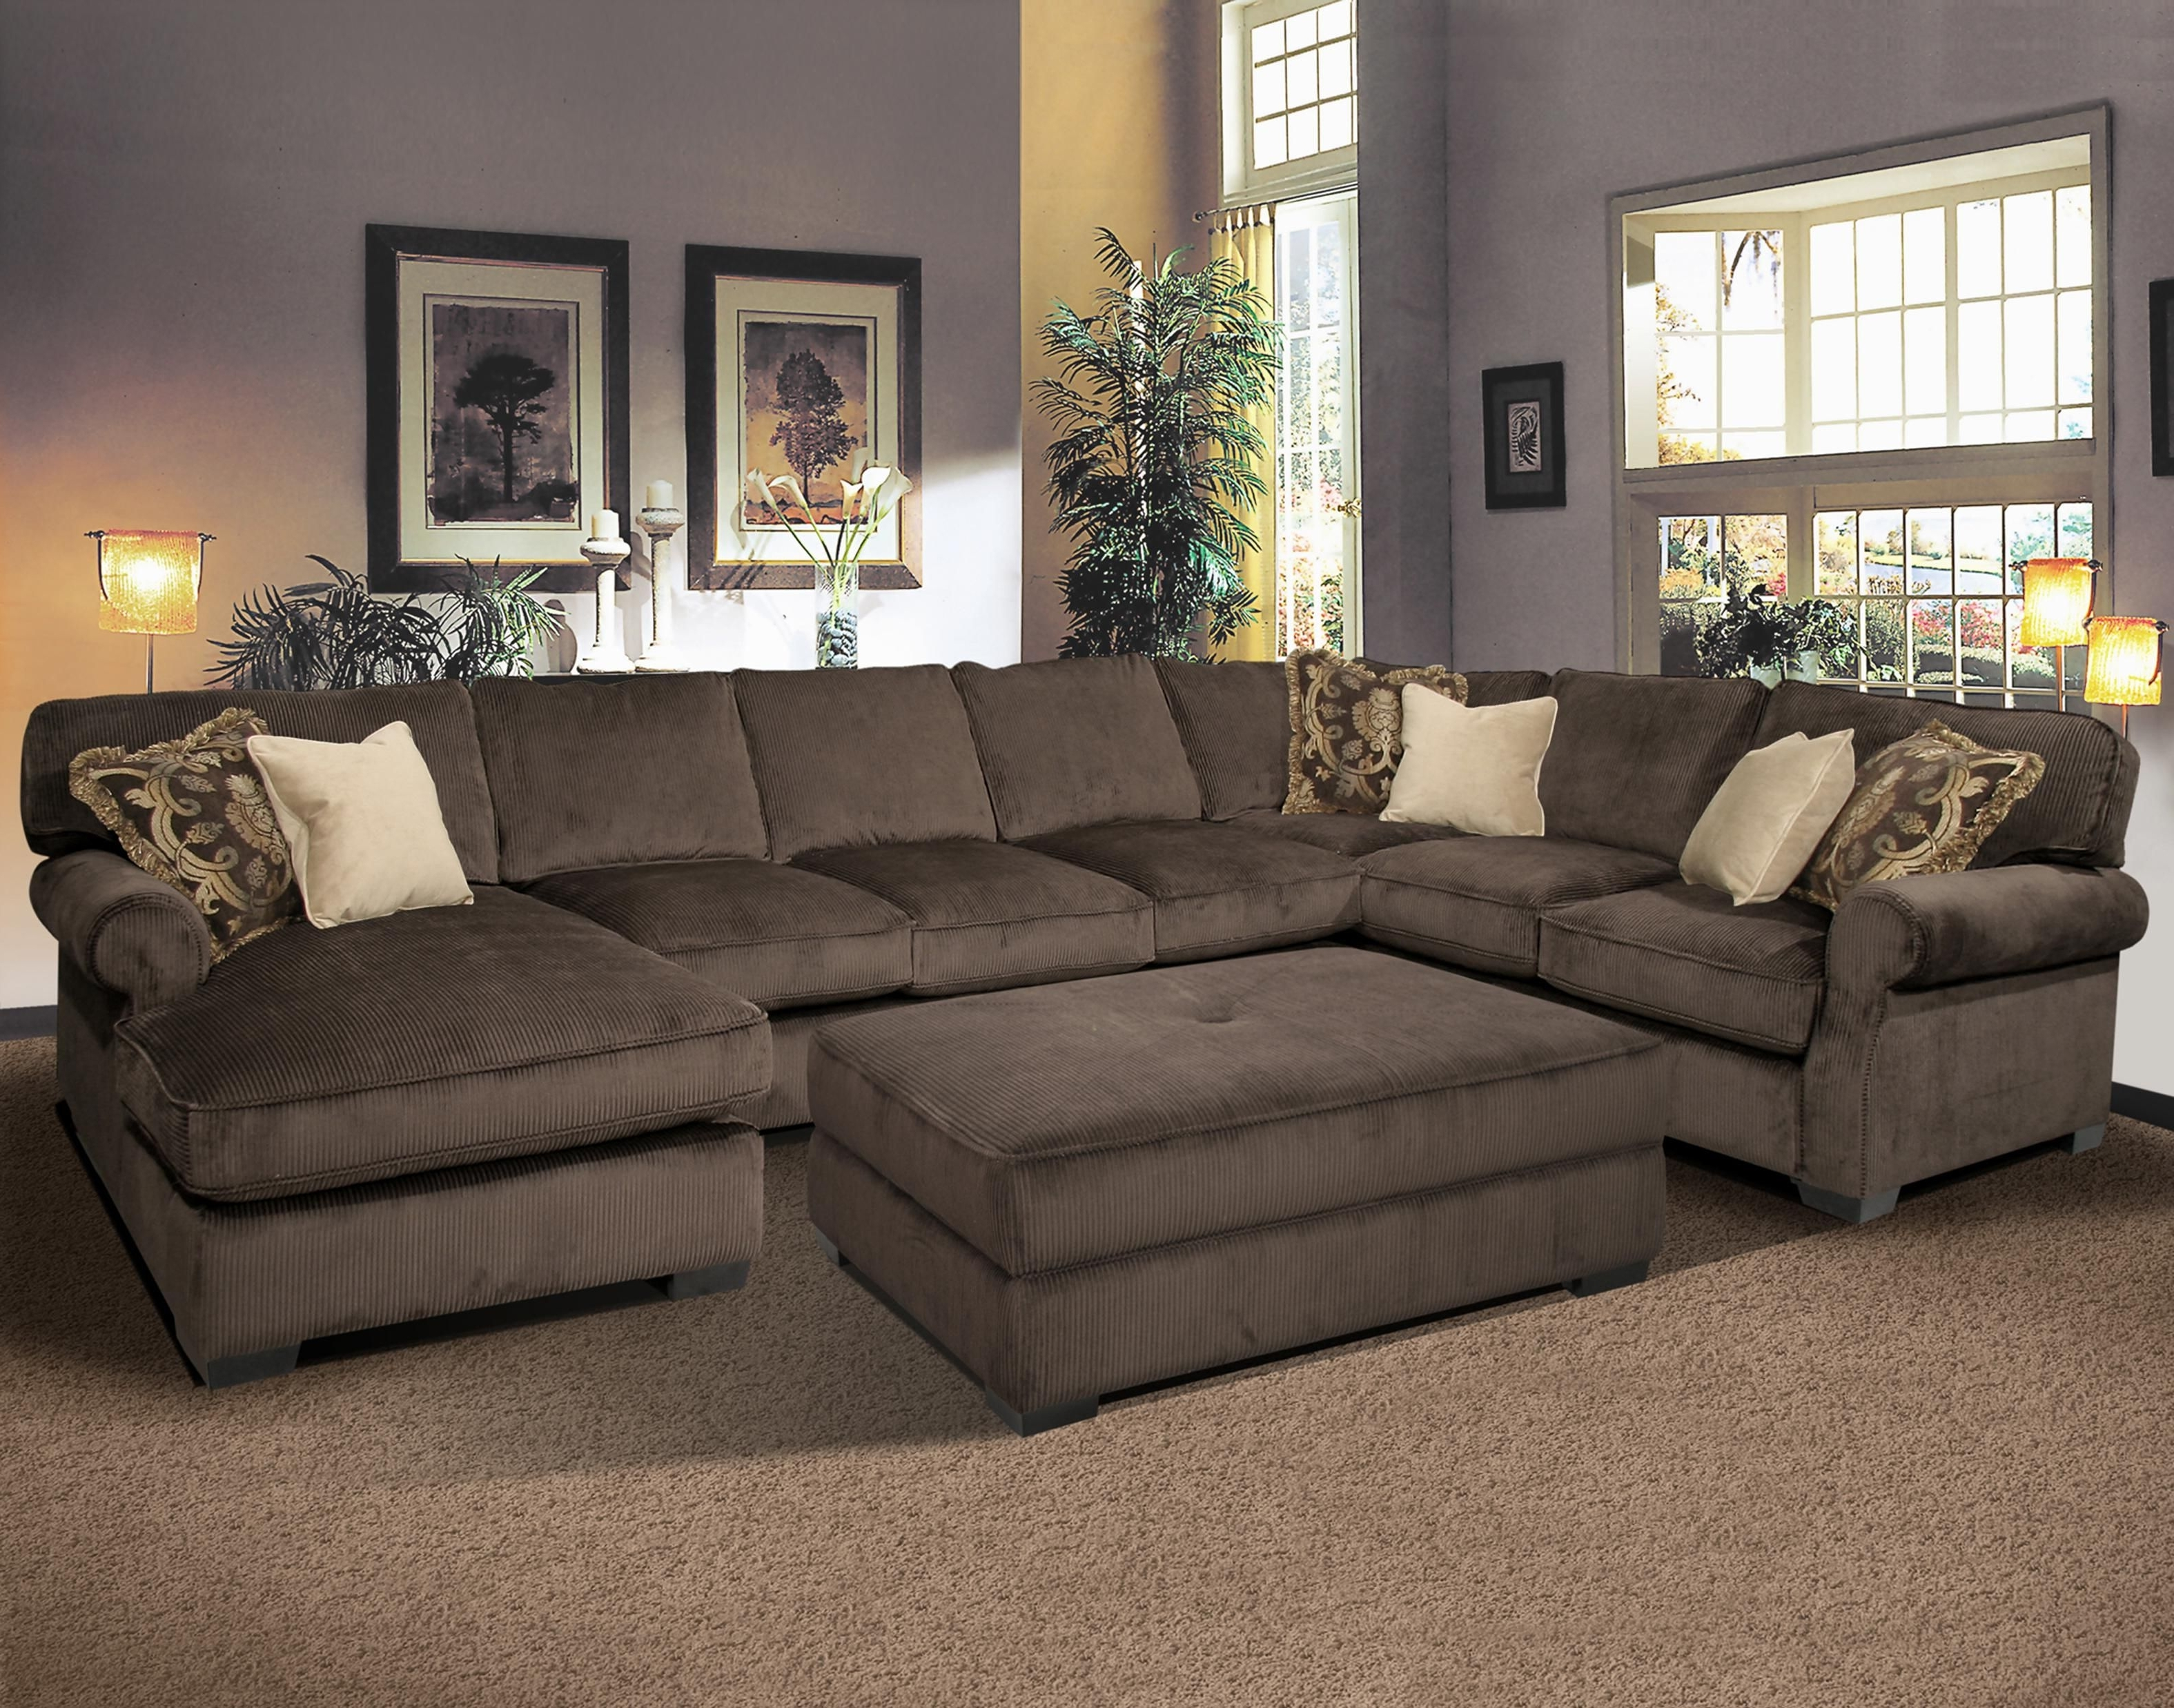 Famous Big And Comfy Grand Island Large, 7 Seat Sectional Sofa With Right Inside Large Sectional Sofas (View 2 of 20)